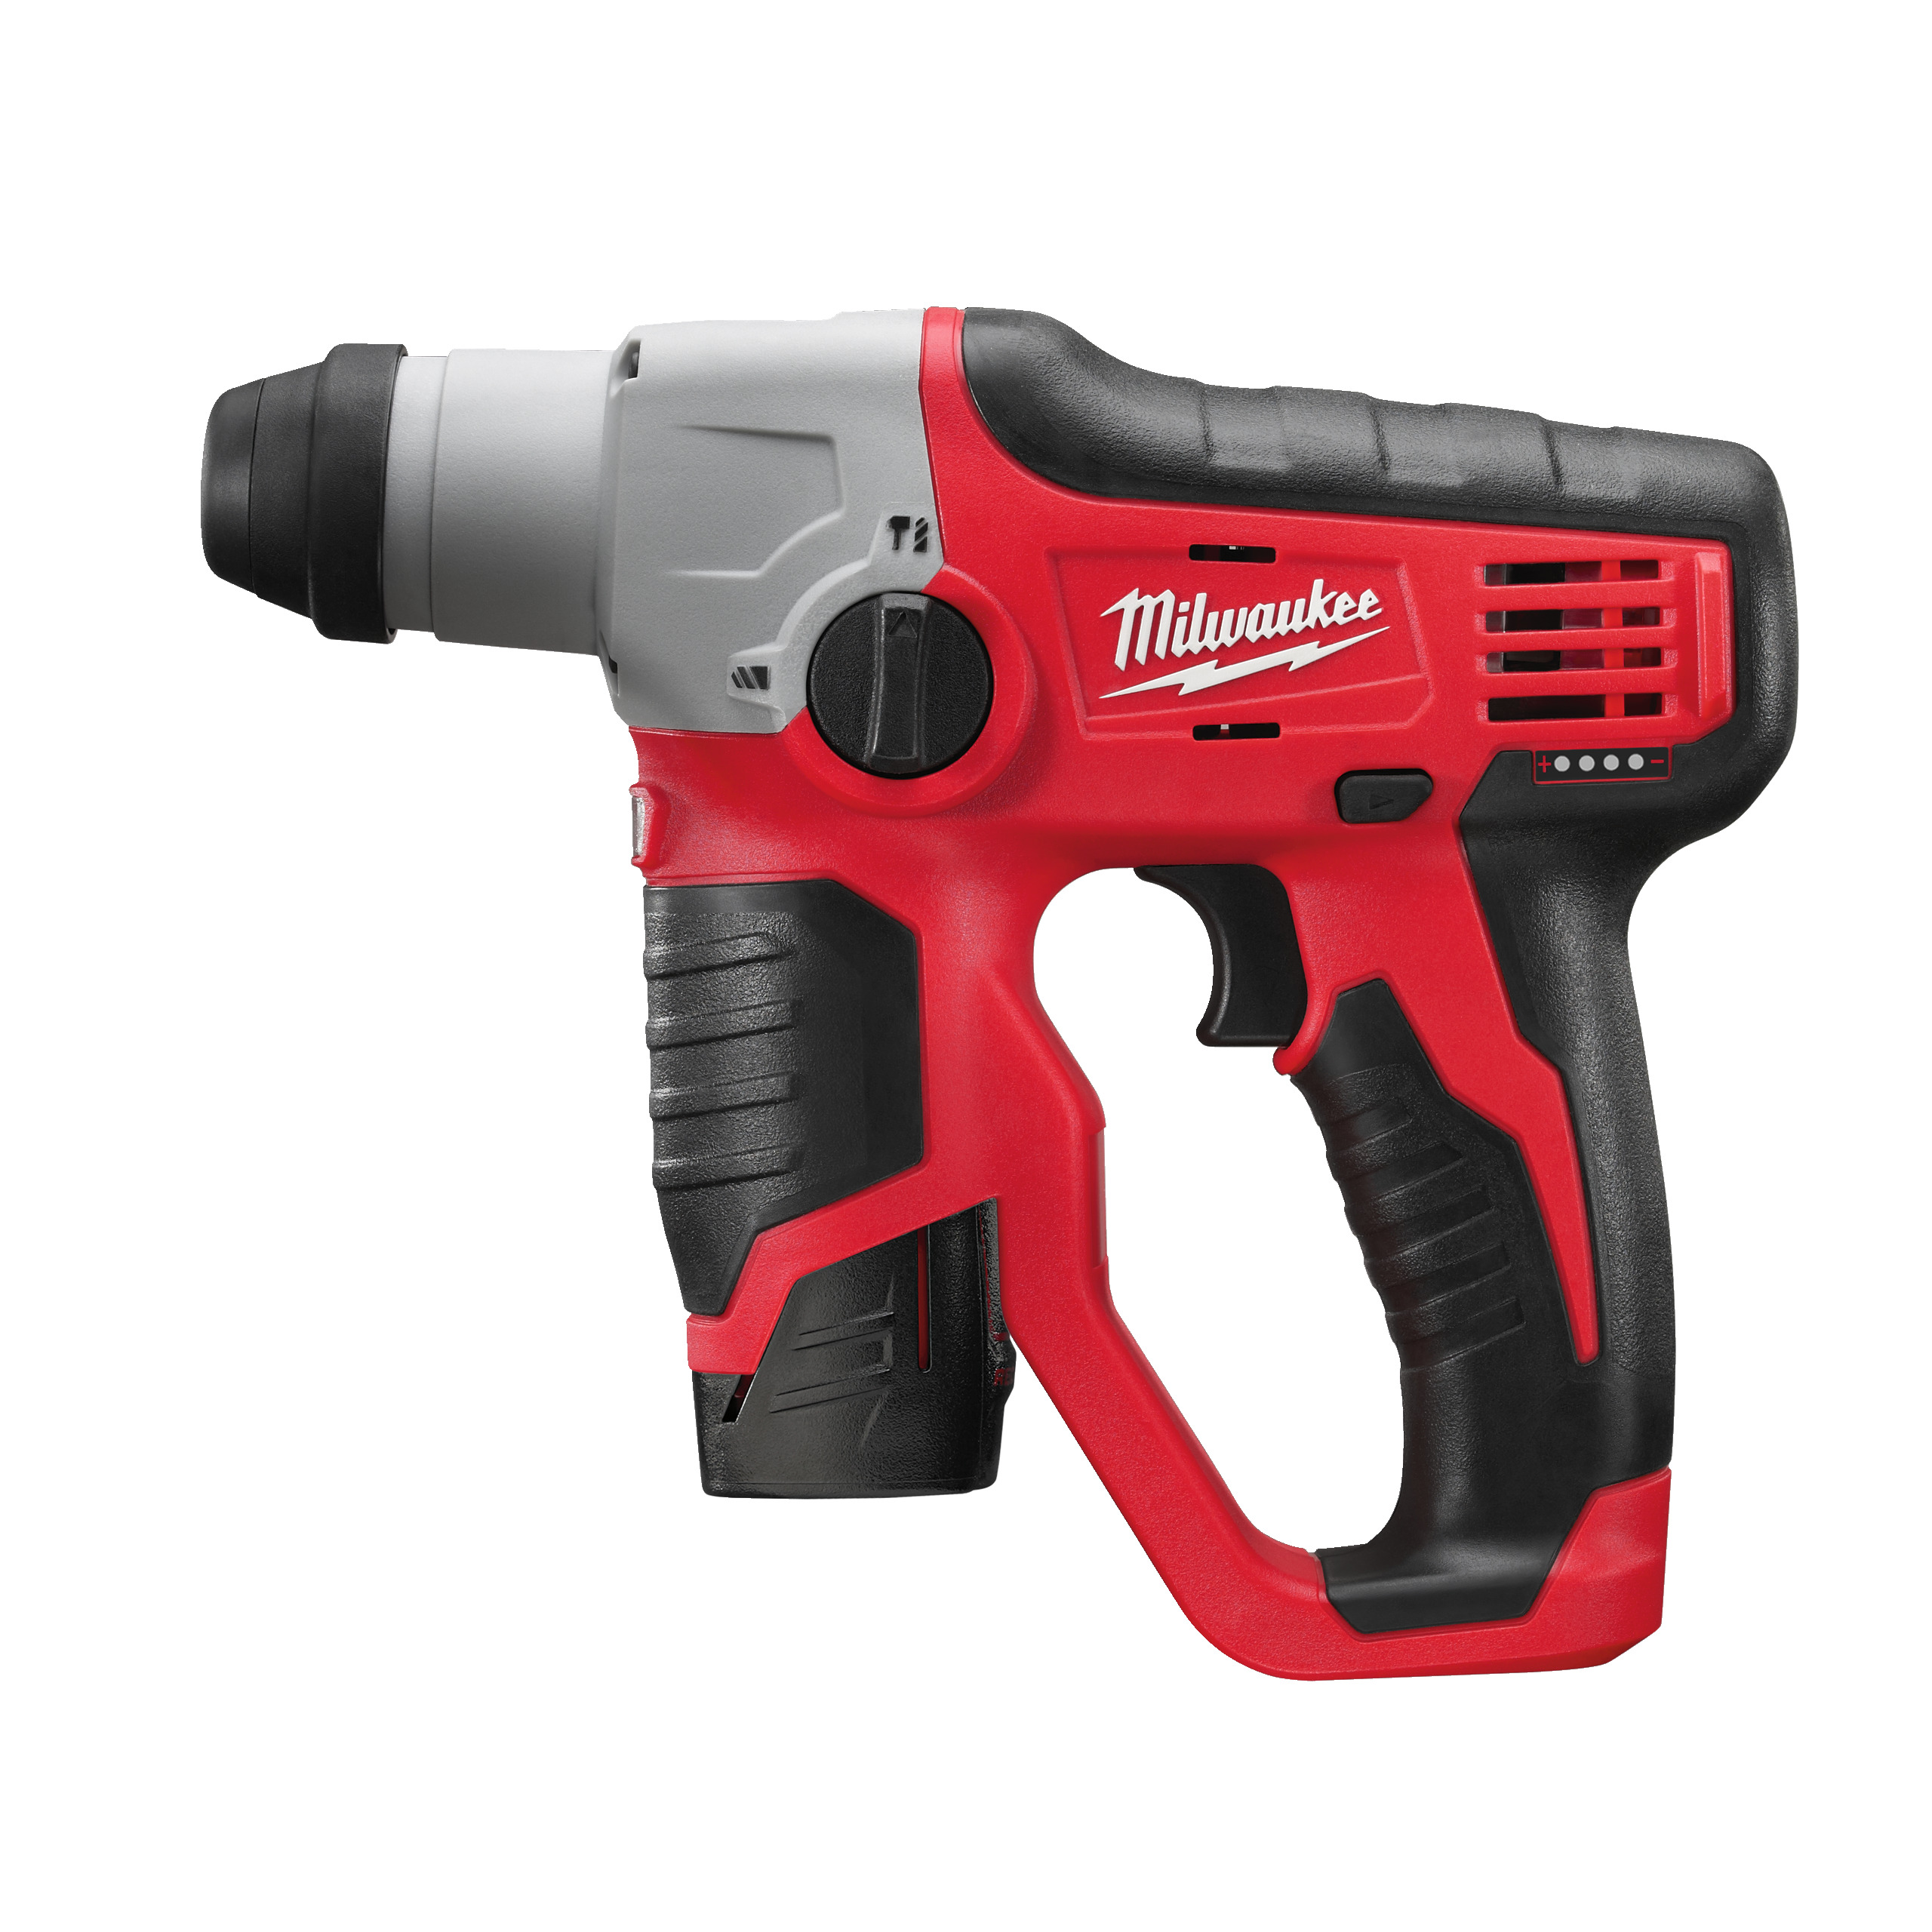 MILWAUKEE M12 H-202C